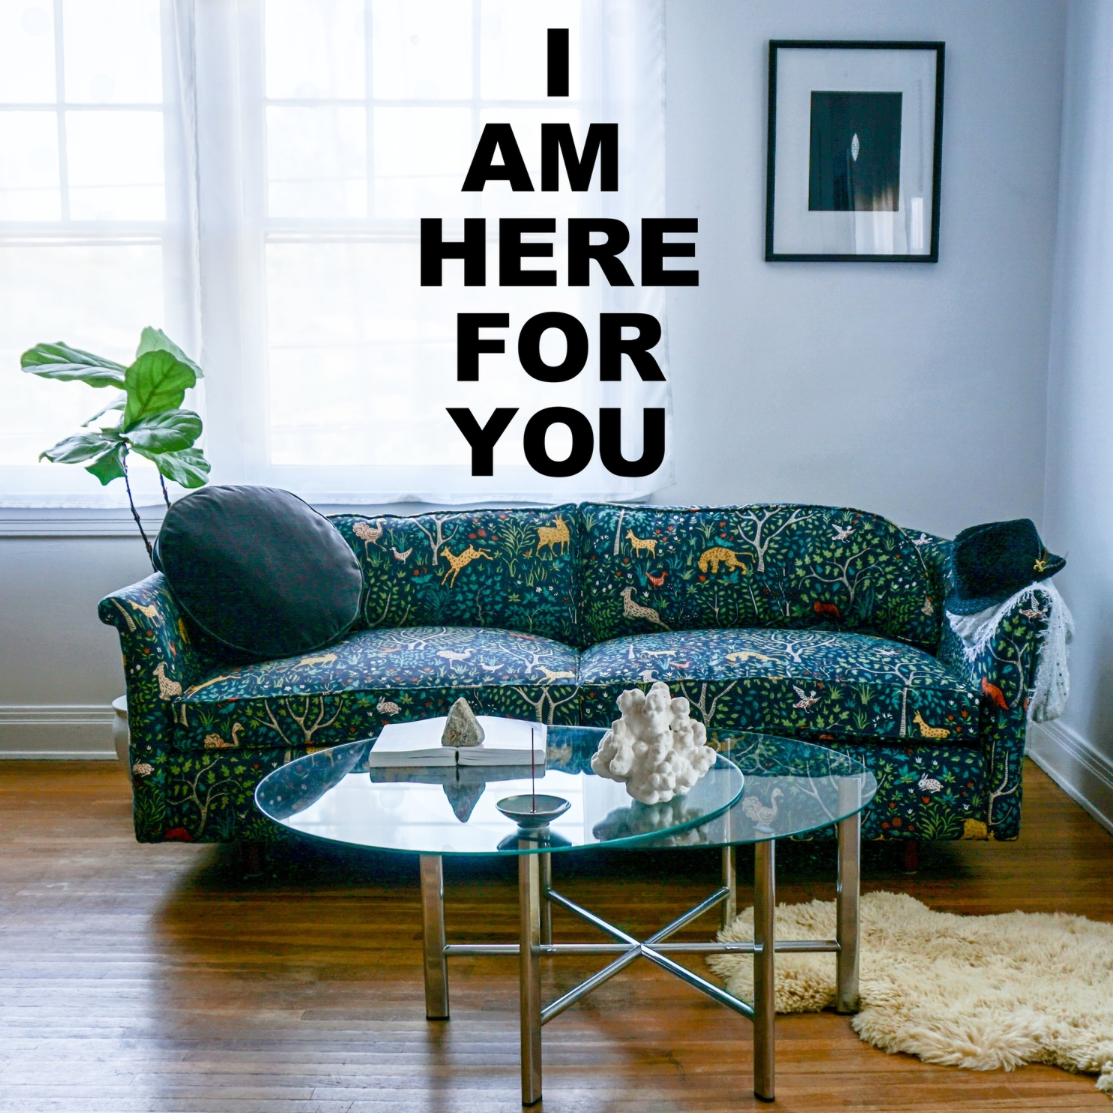 Click the couch to get in touch with me!